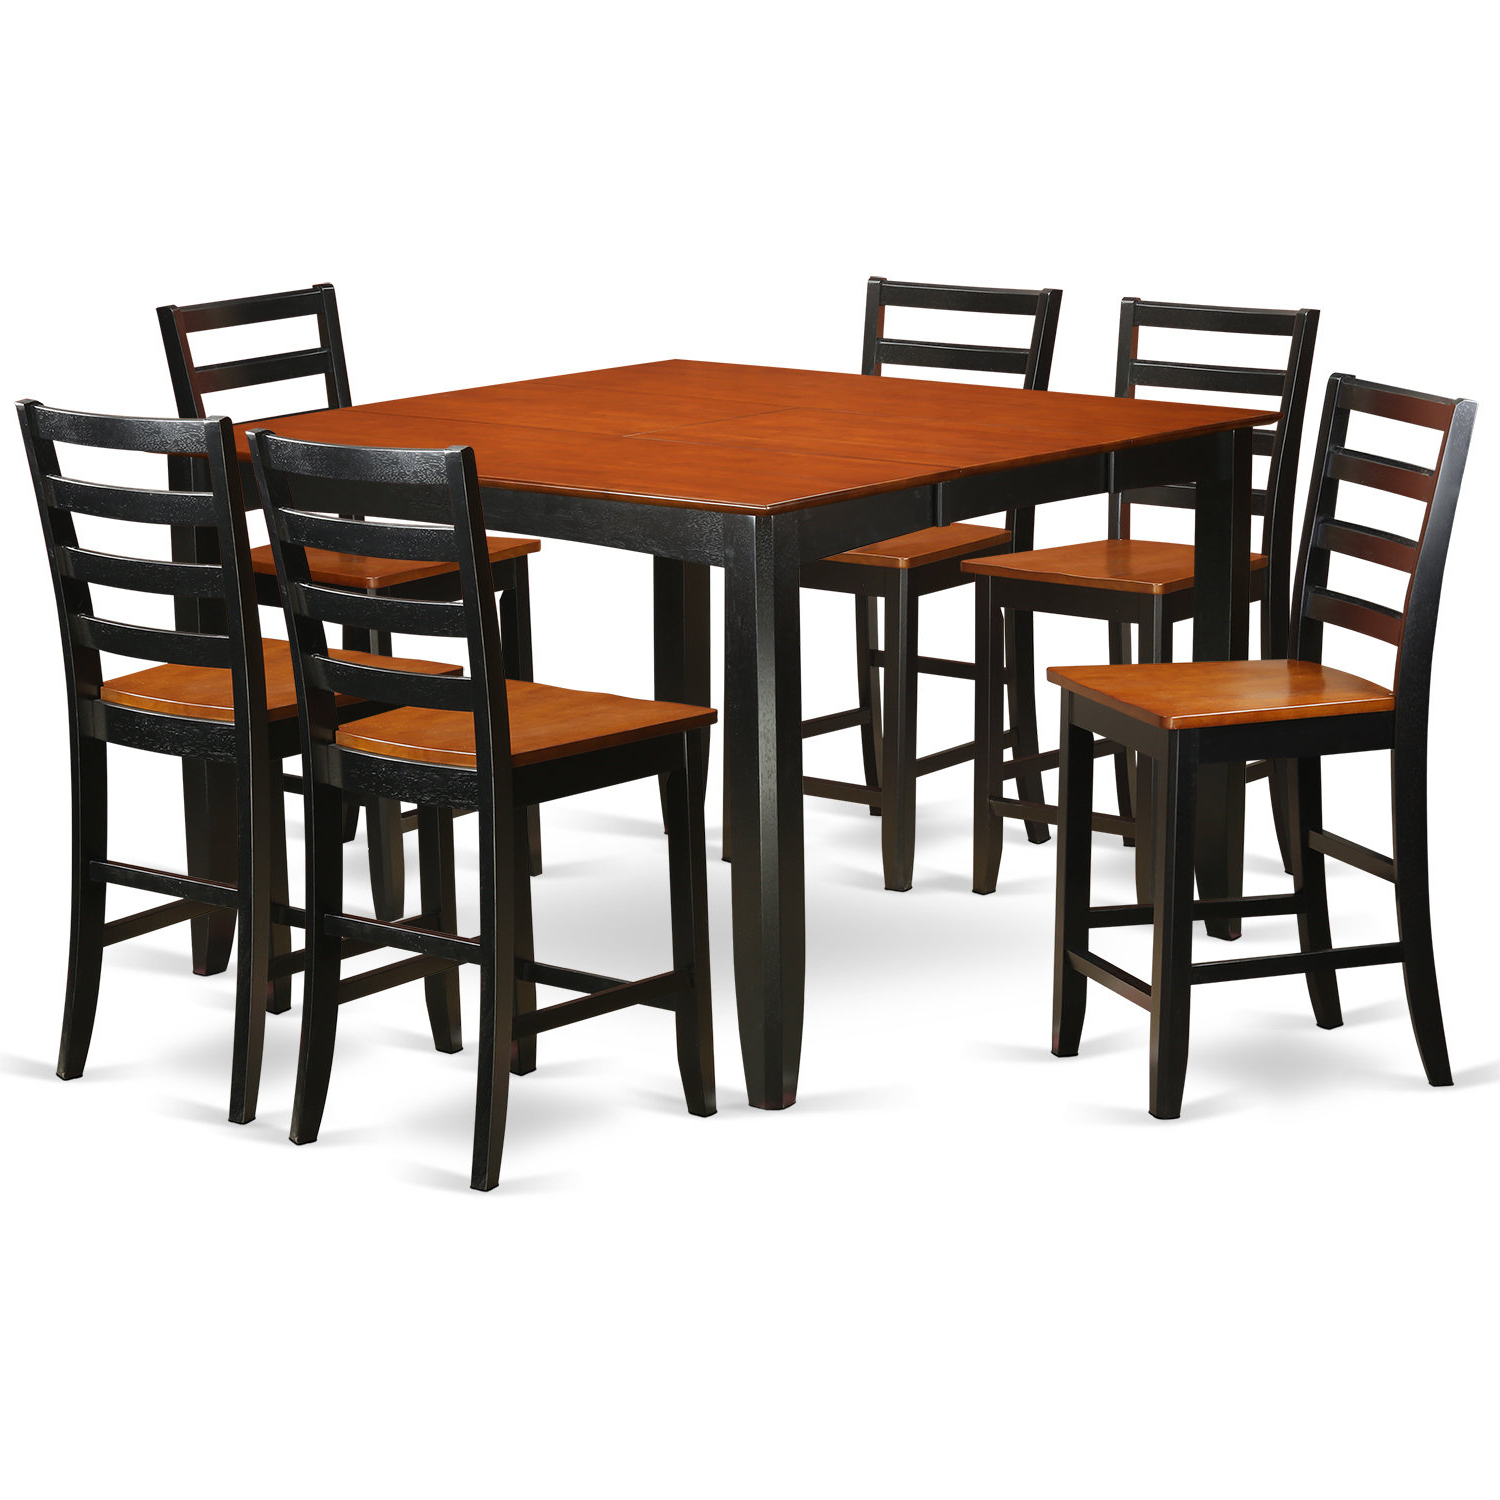 Wayfair Inside Well Liked Copper Grove Obsidian Black Tempered Glass Apartment Coffee Tables (View 18 of 20)